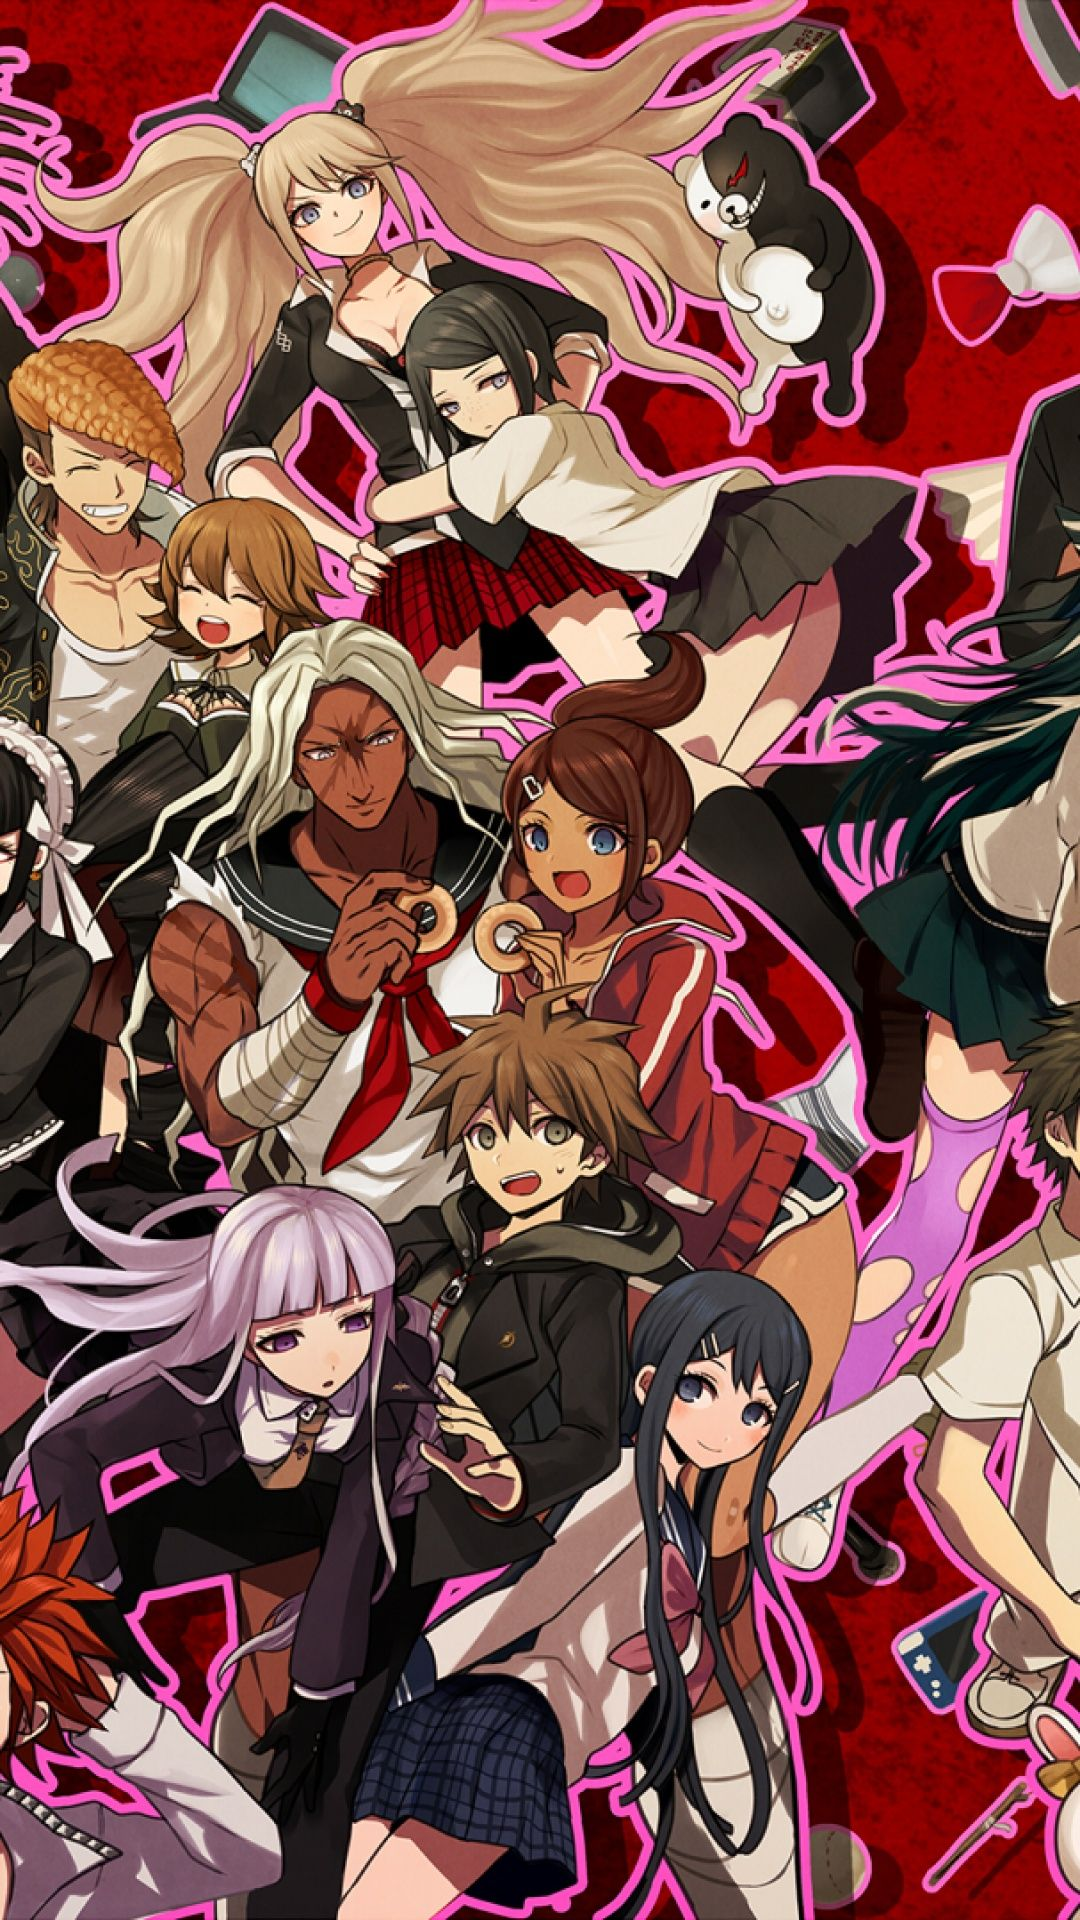 Danganronpa Wallpapers Wallpaper Cave Fire emblem